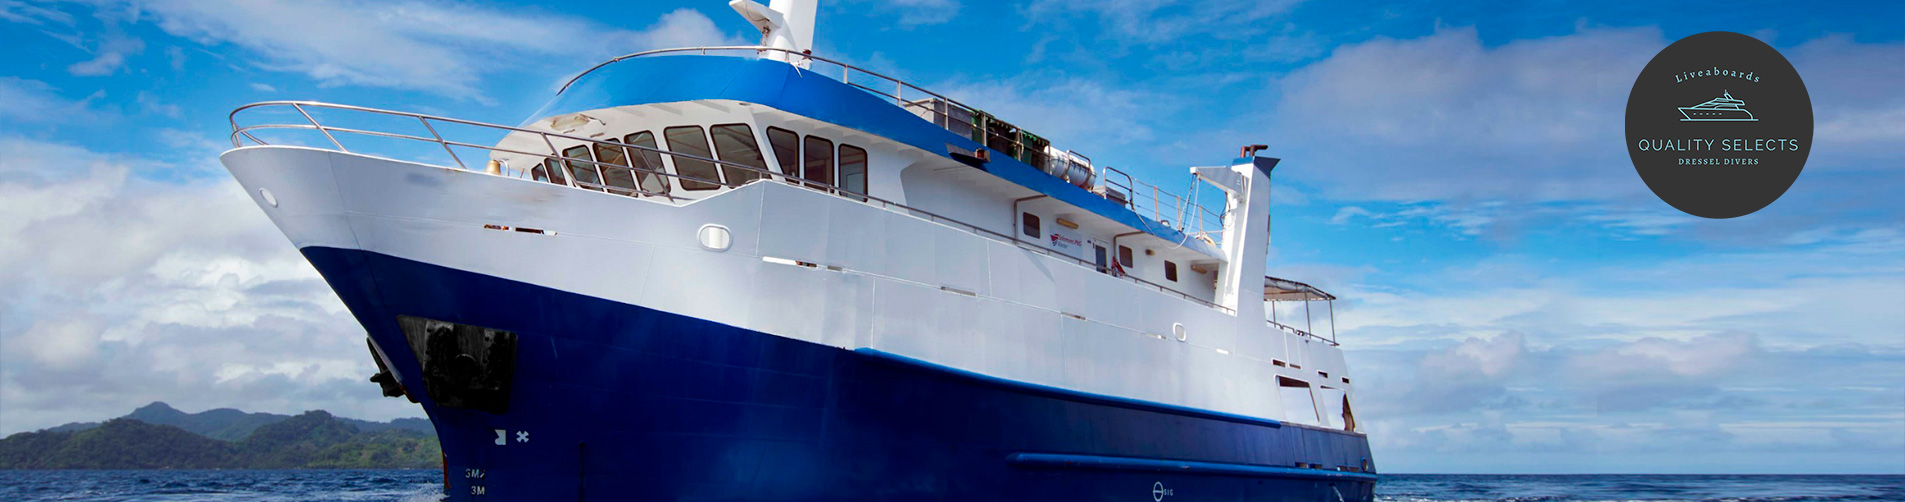 Solomon Islands Liveaboard Diving - Vessel